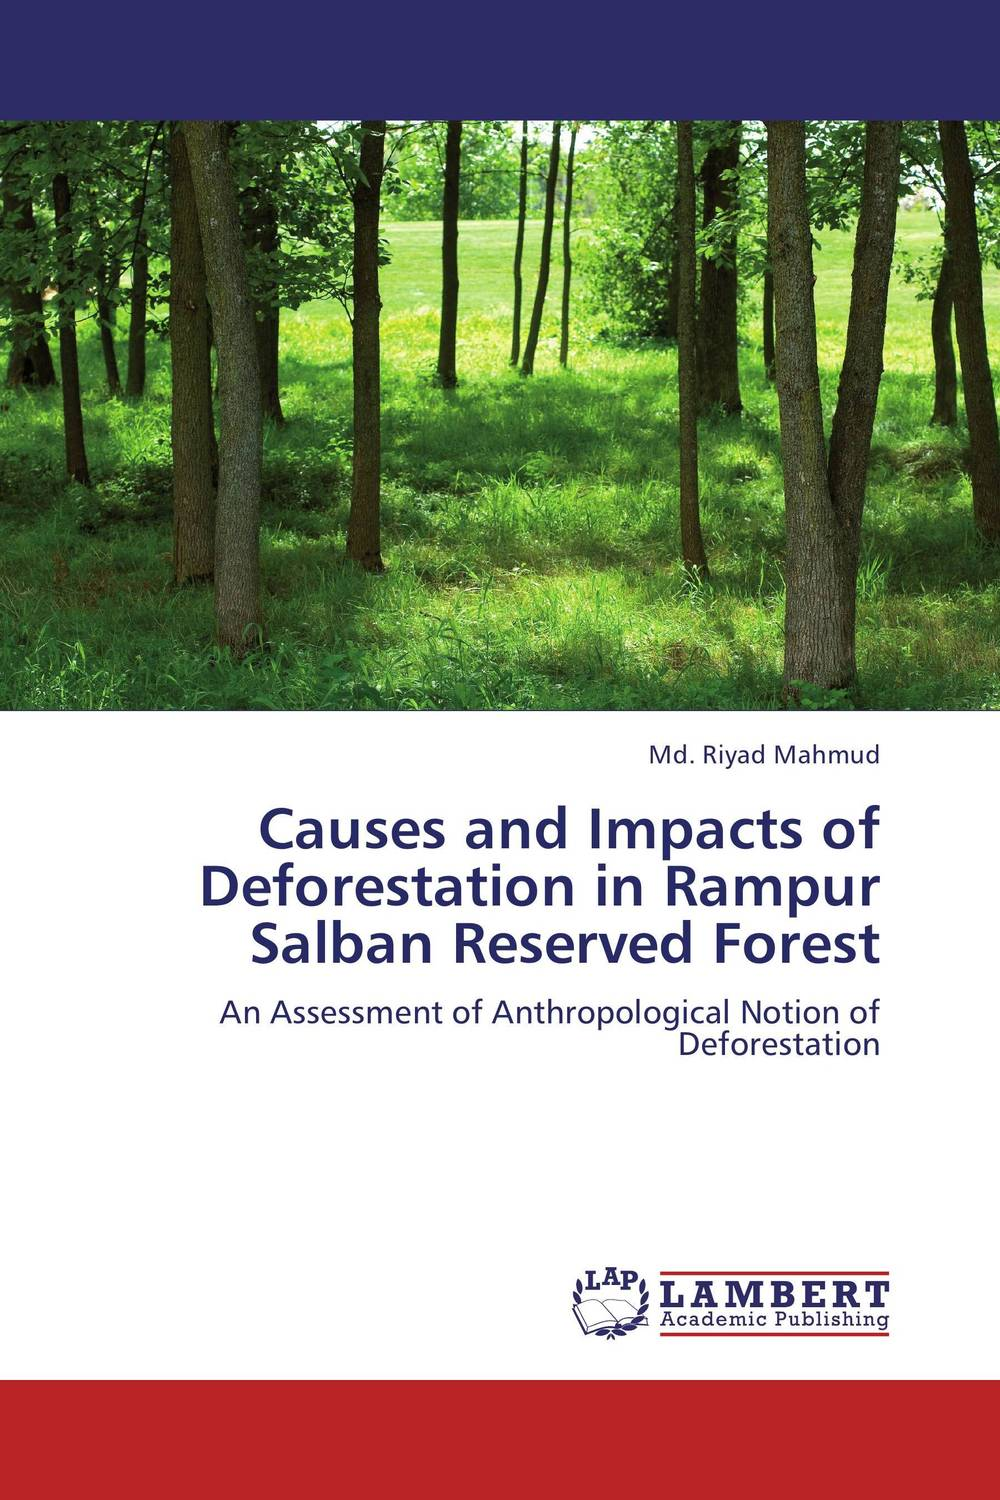 Causes and Impacts of Deforestation in Rampur Salban Reserved Forest reserved ремень